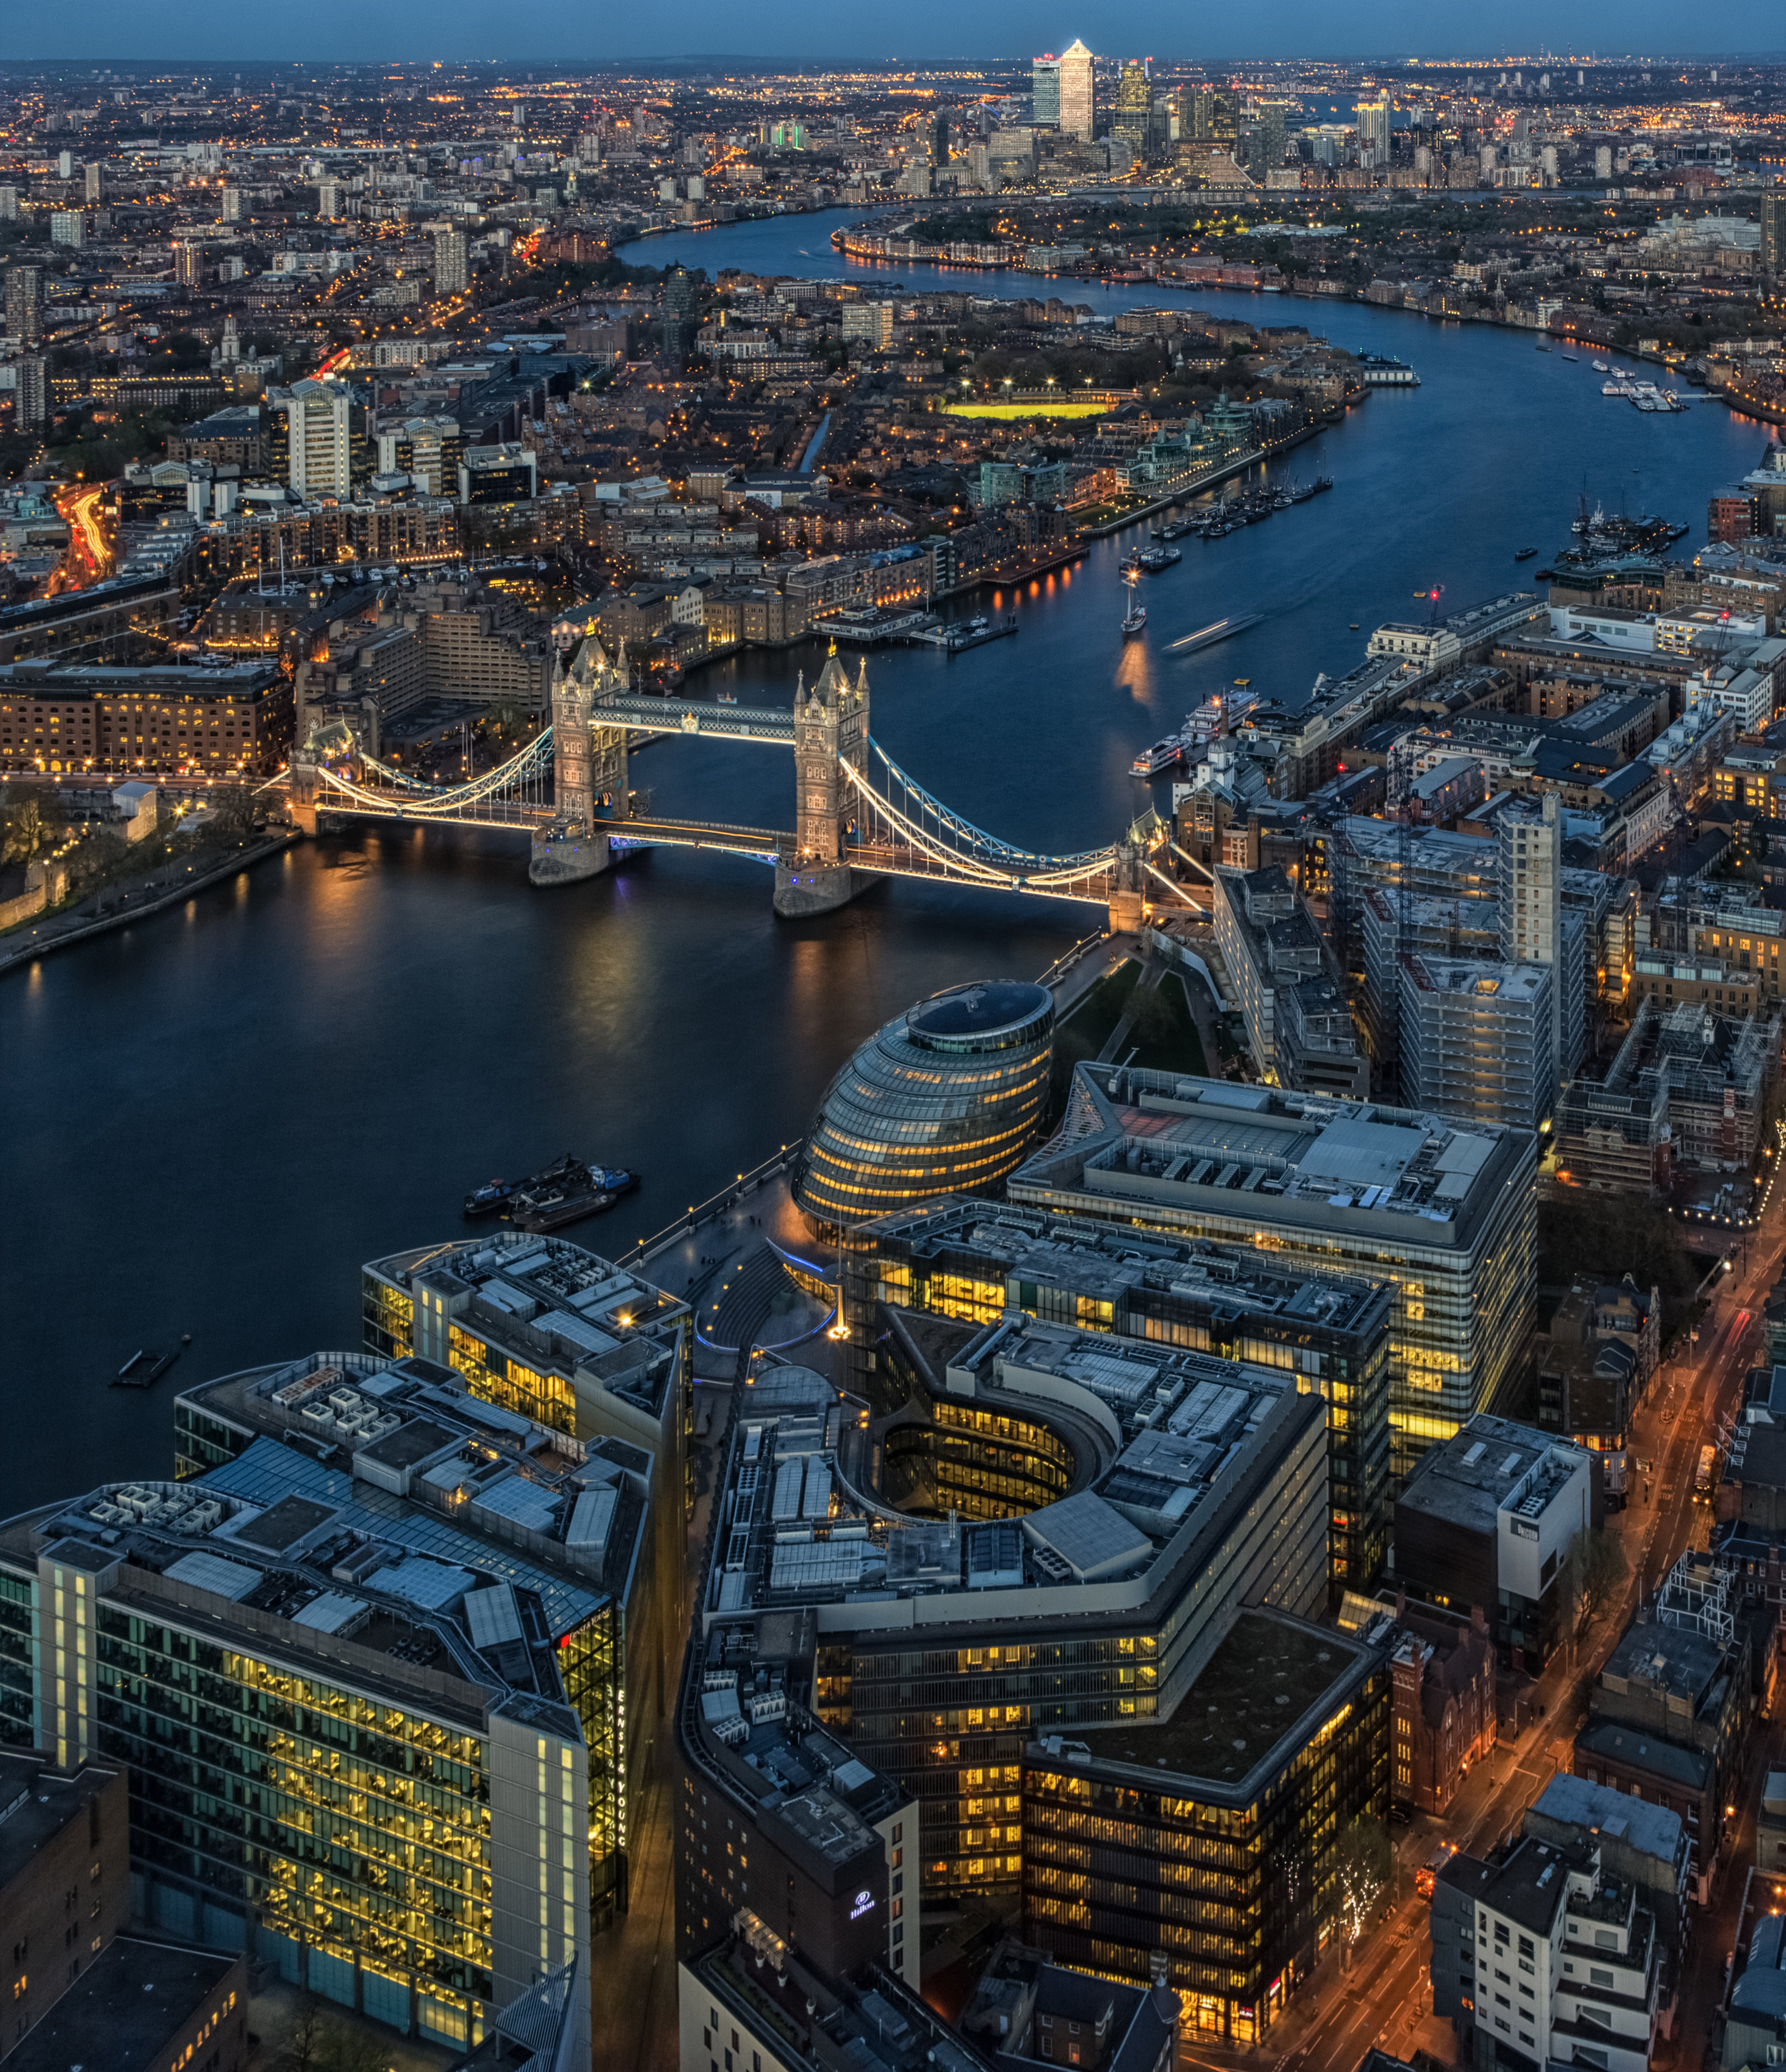 The Serpent of London